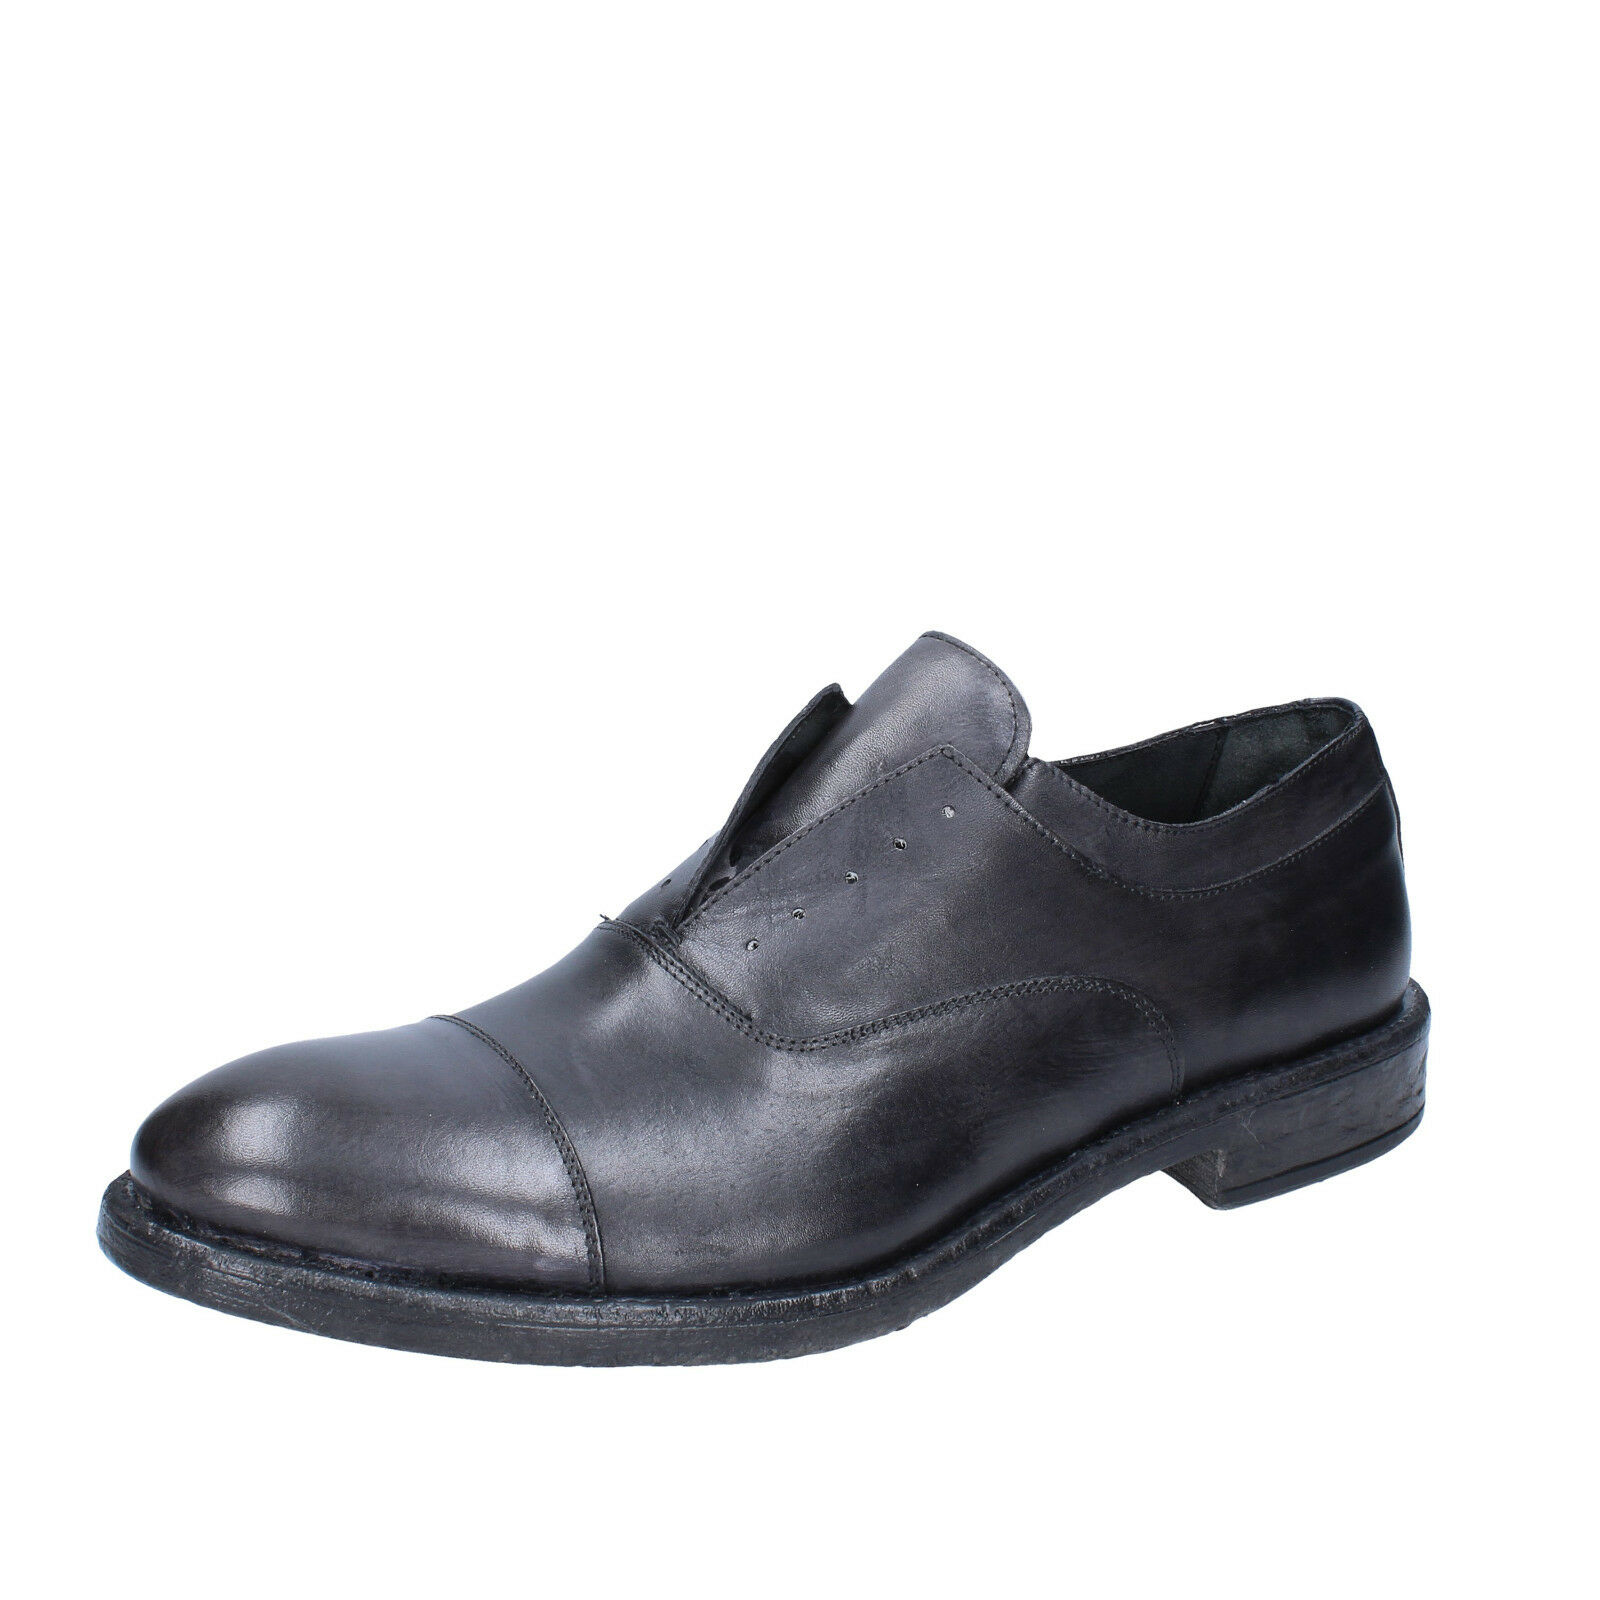 Mens shoes +2 MADE IN ITALY 9 () elegant dark grey leather BX423-43